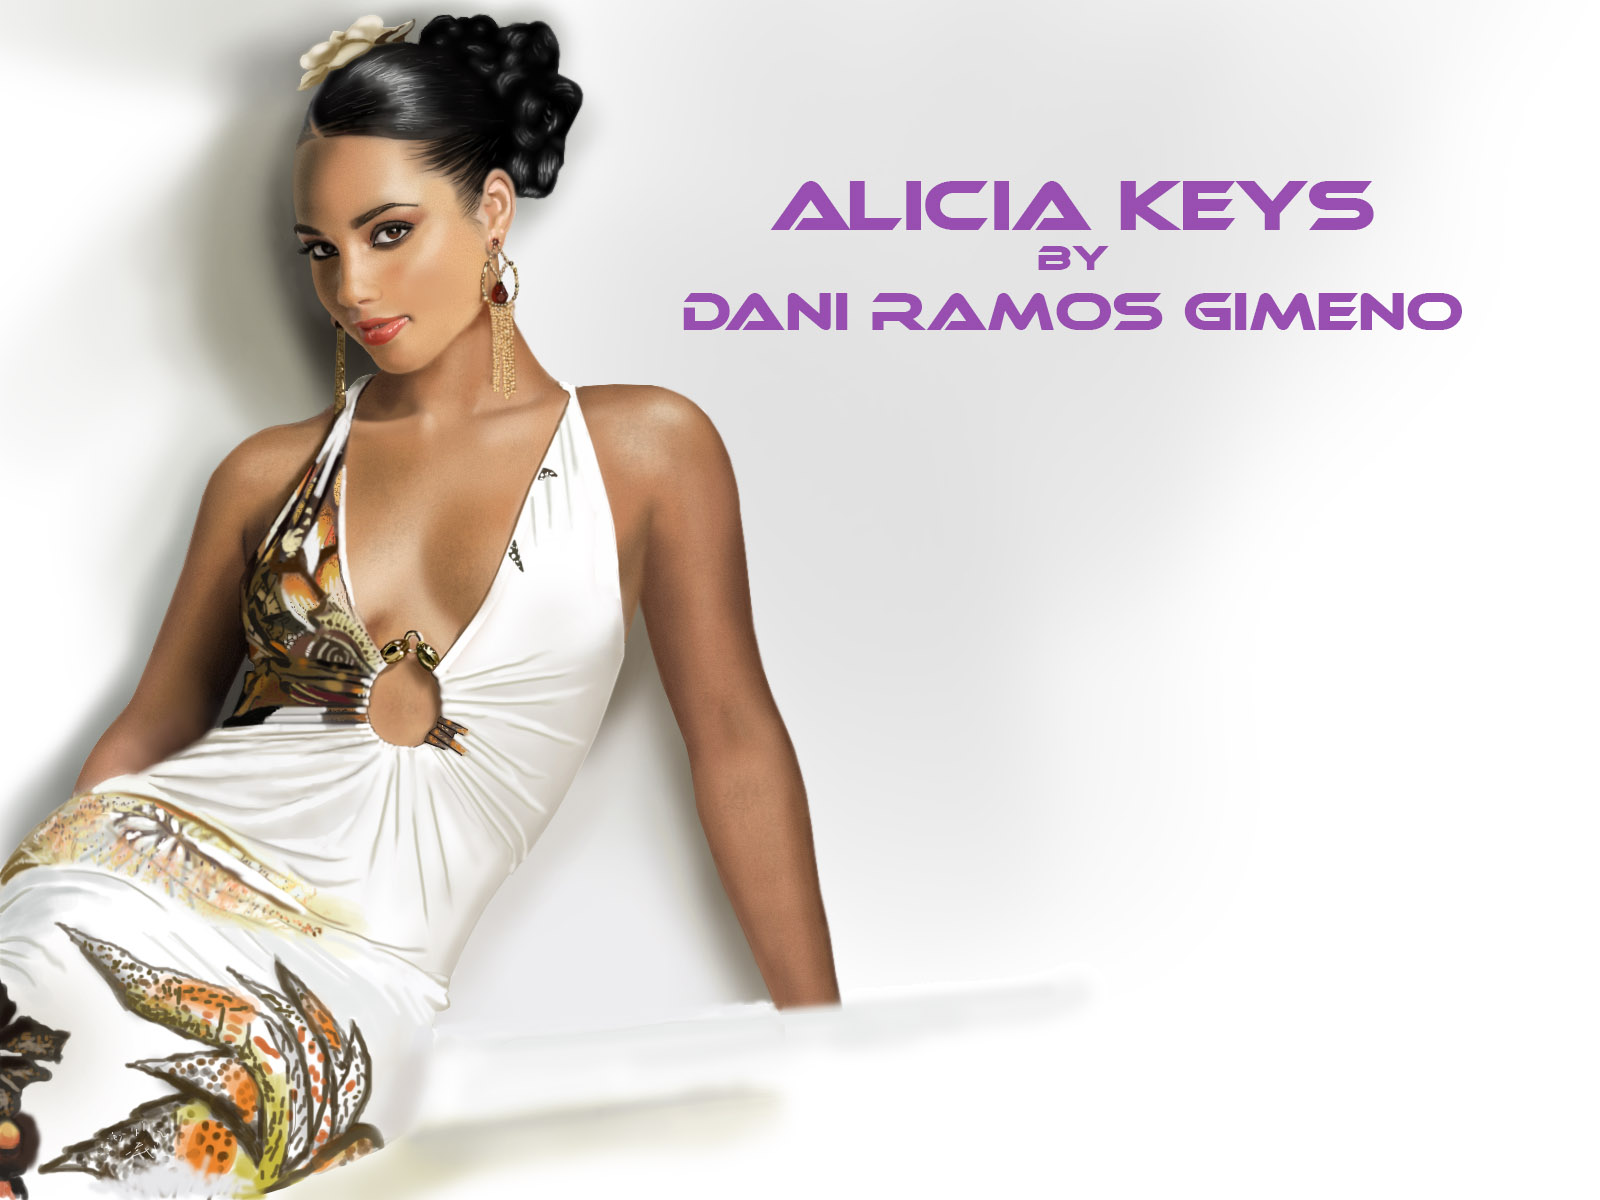 Alicia-Keys-alicia-keys-20685538-1600-1200 copia